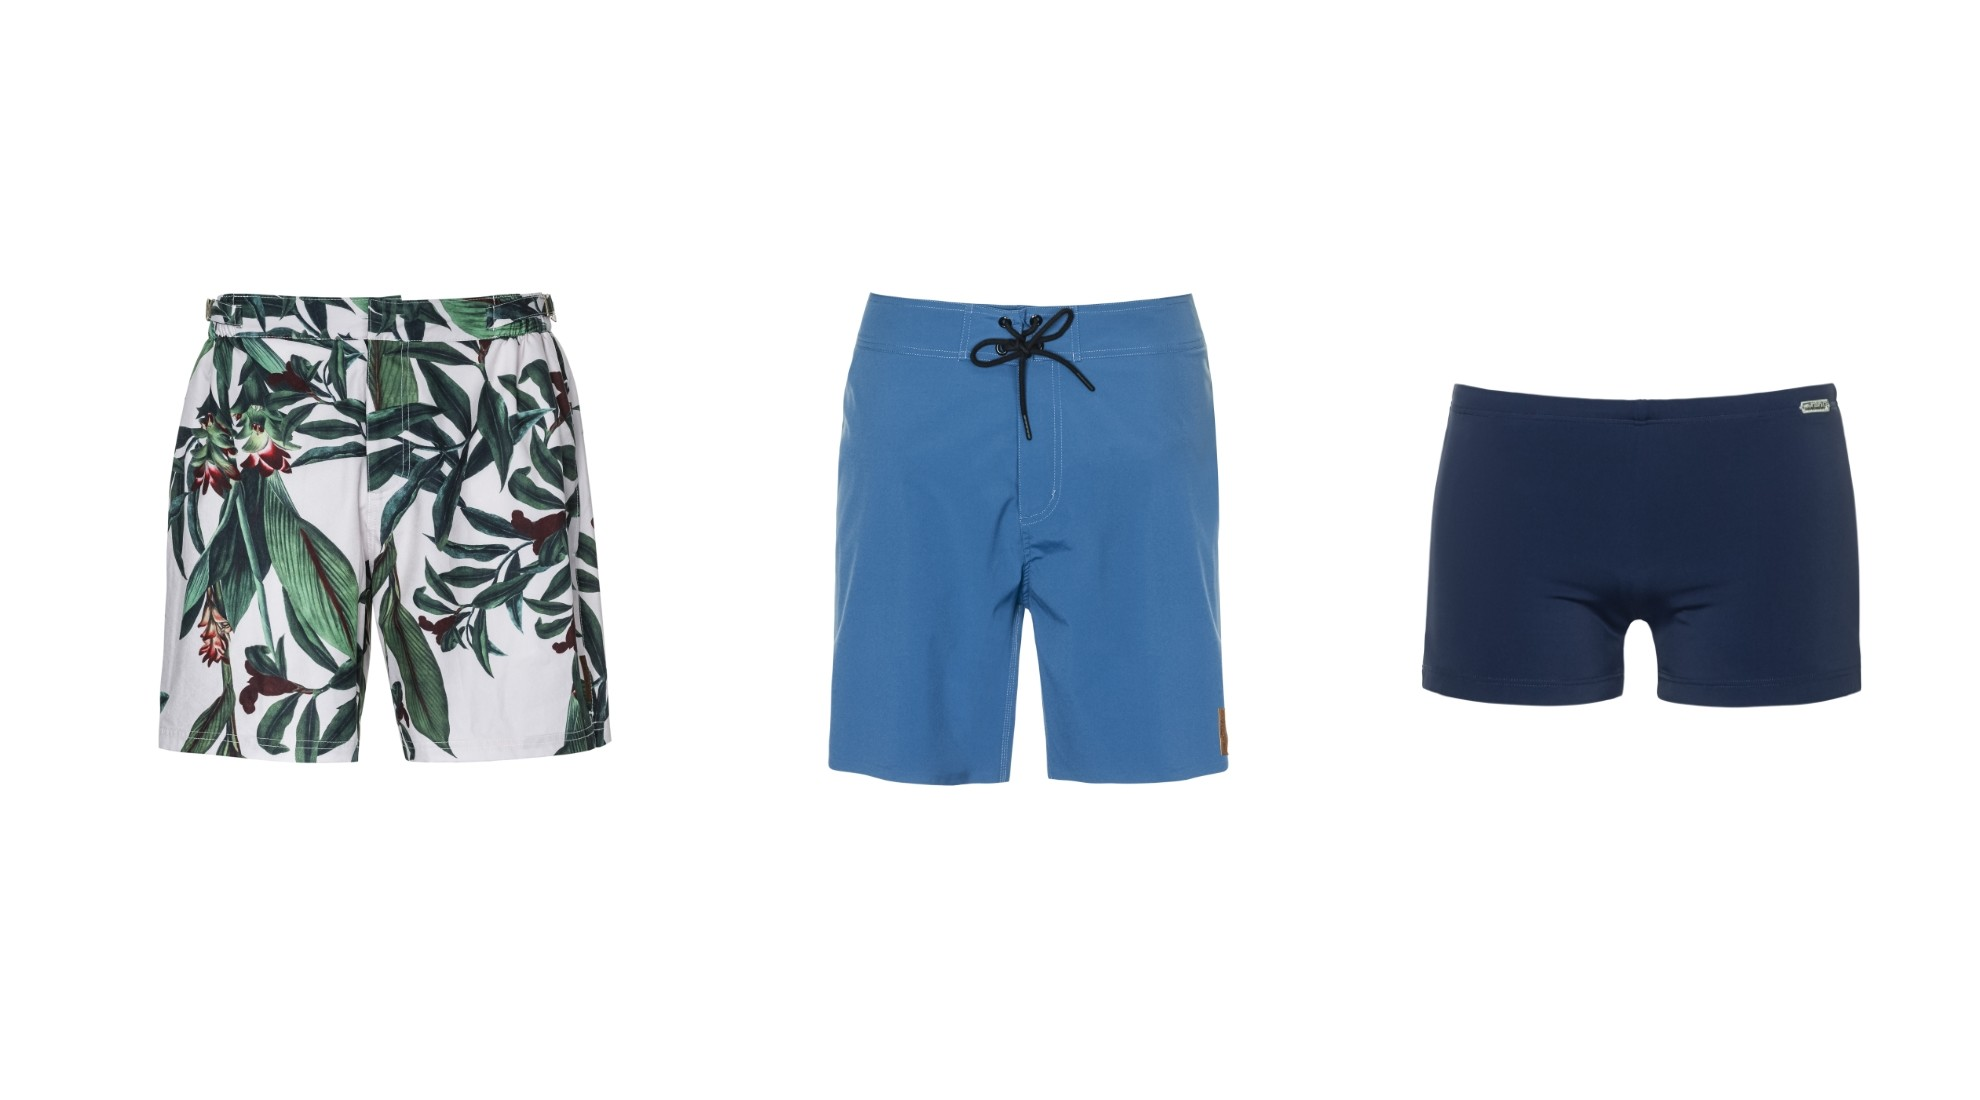 Enormous swim shorts selection